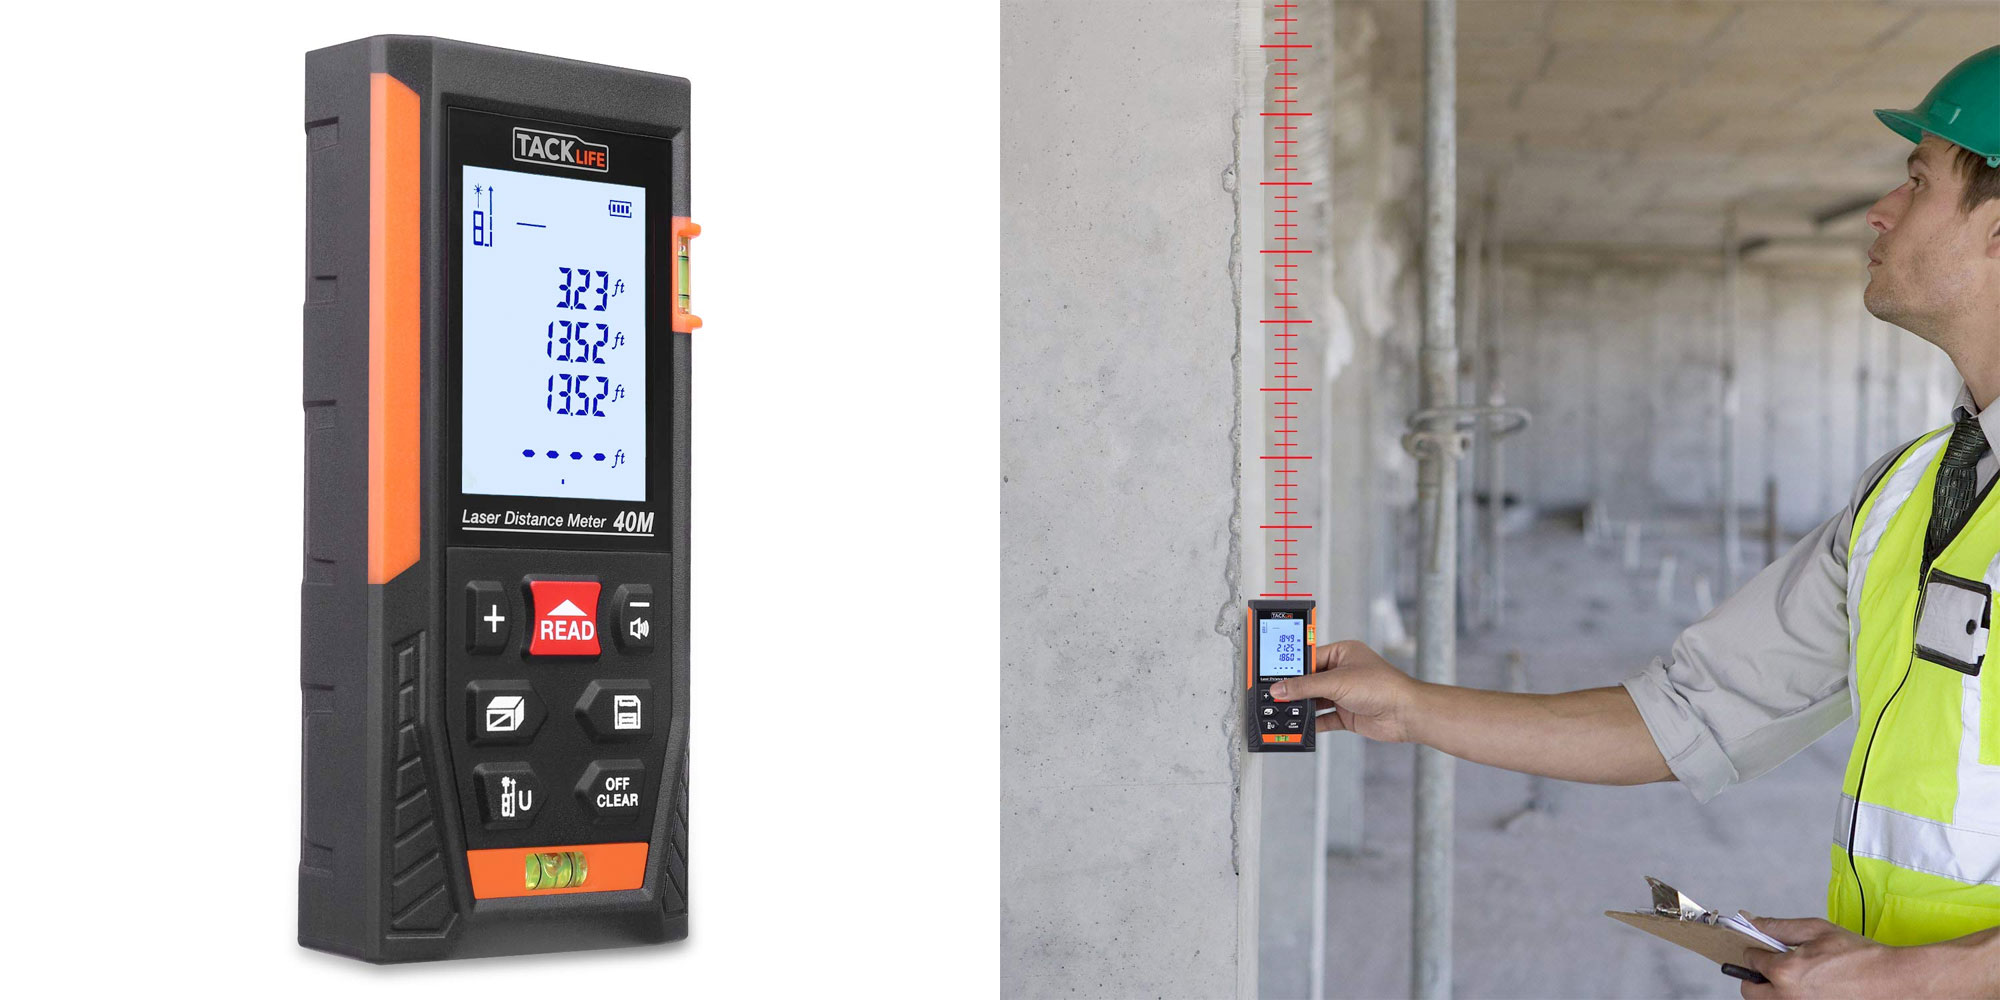 Get accurate dimensions up to 131-feet w/ this $21.50 Prime shipped laser measure (Reg. $30+)